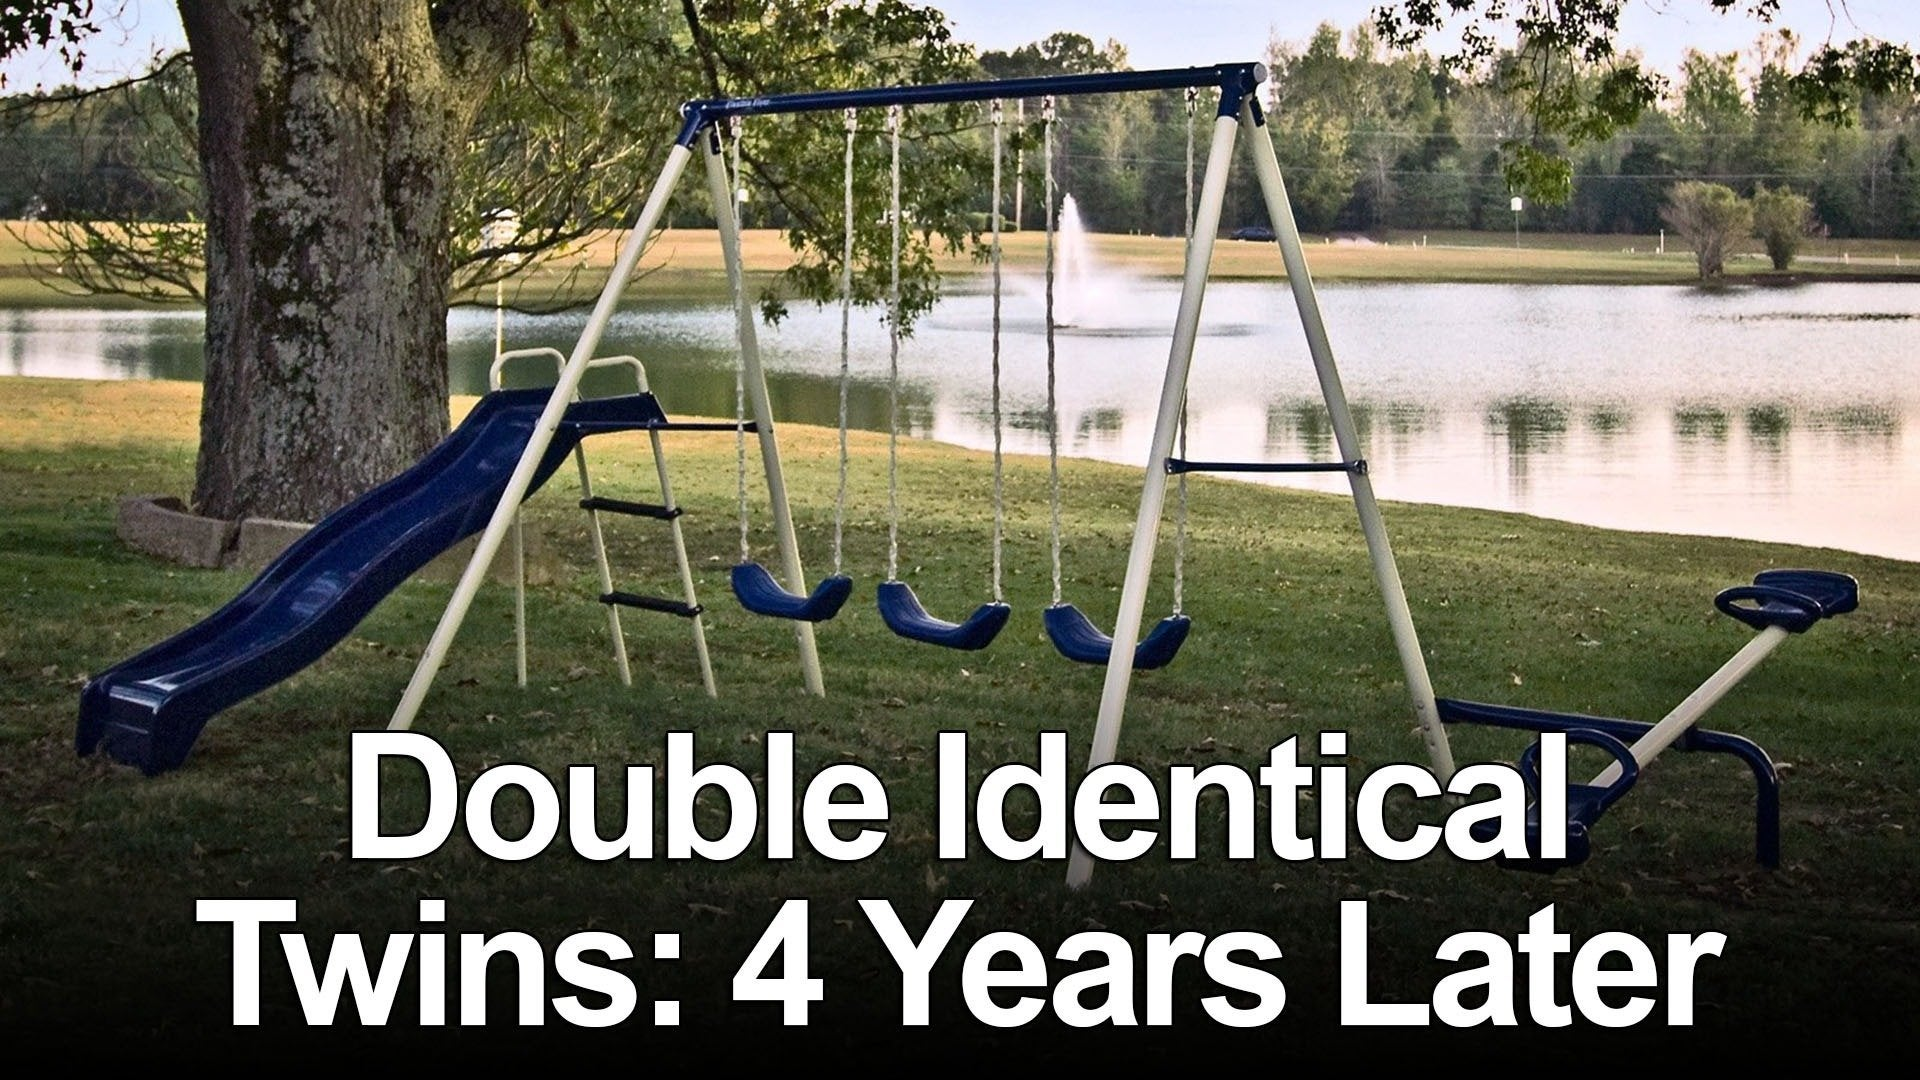 Double Identical Twins: 4 Years Later